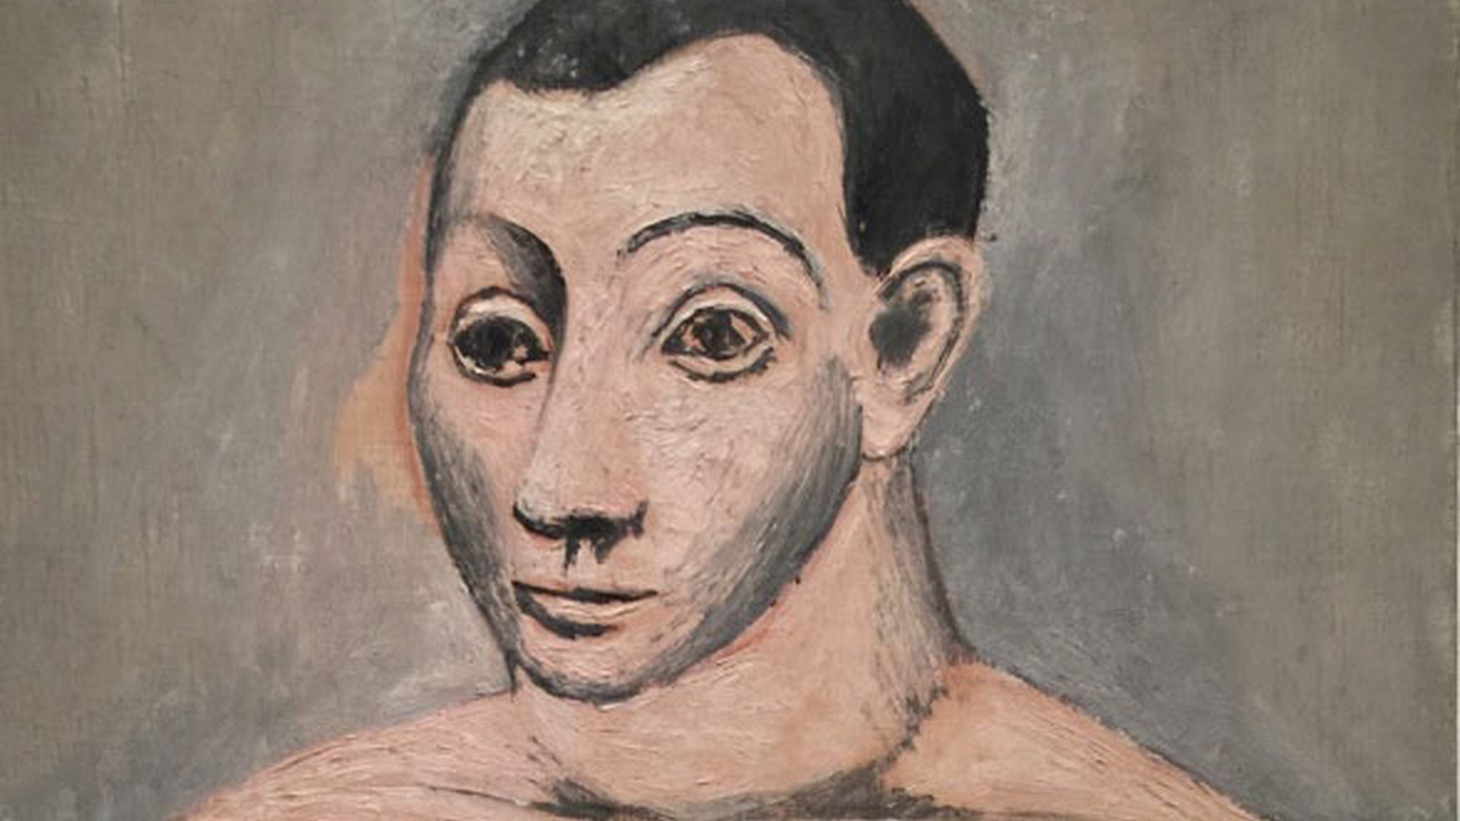 Edward Goldman talks about LACMA's blockbuster exhibition, Conversations across Time, packed with great works by Pablo Picasso and Diego Rivera.